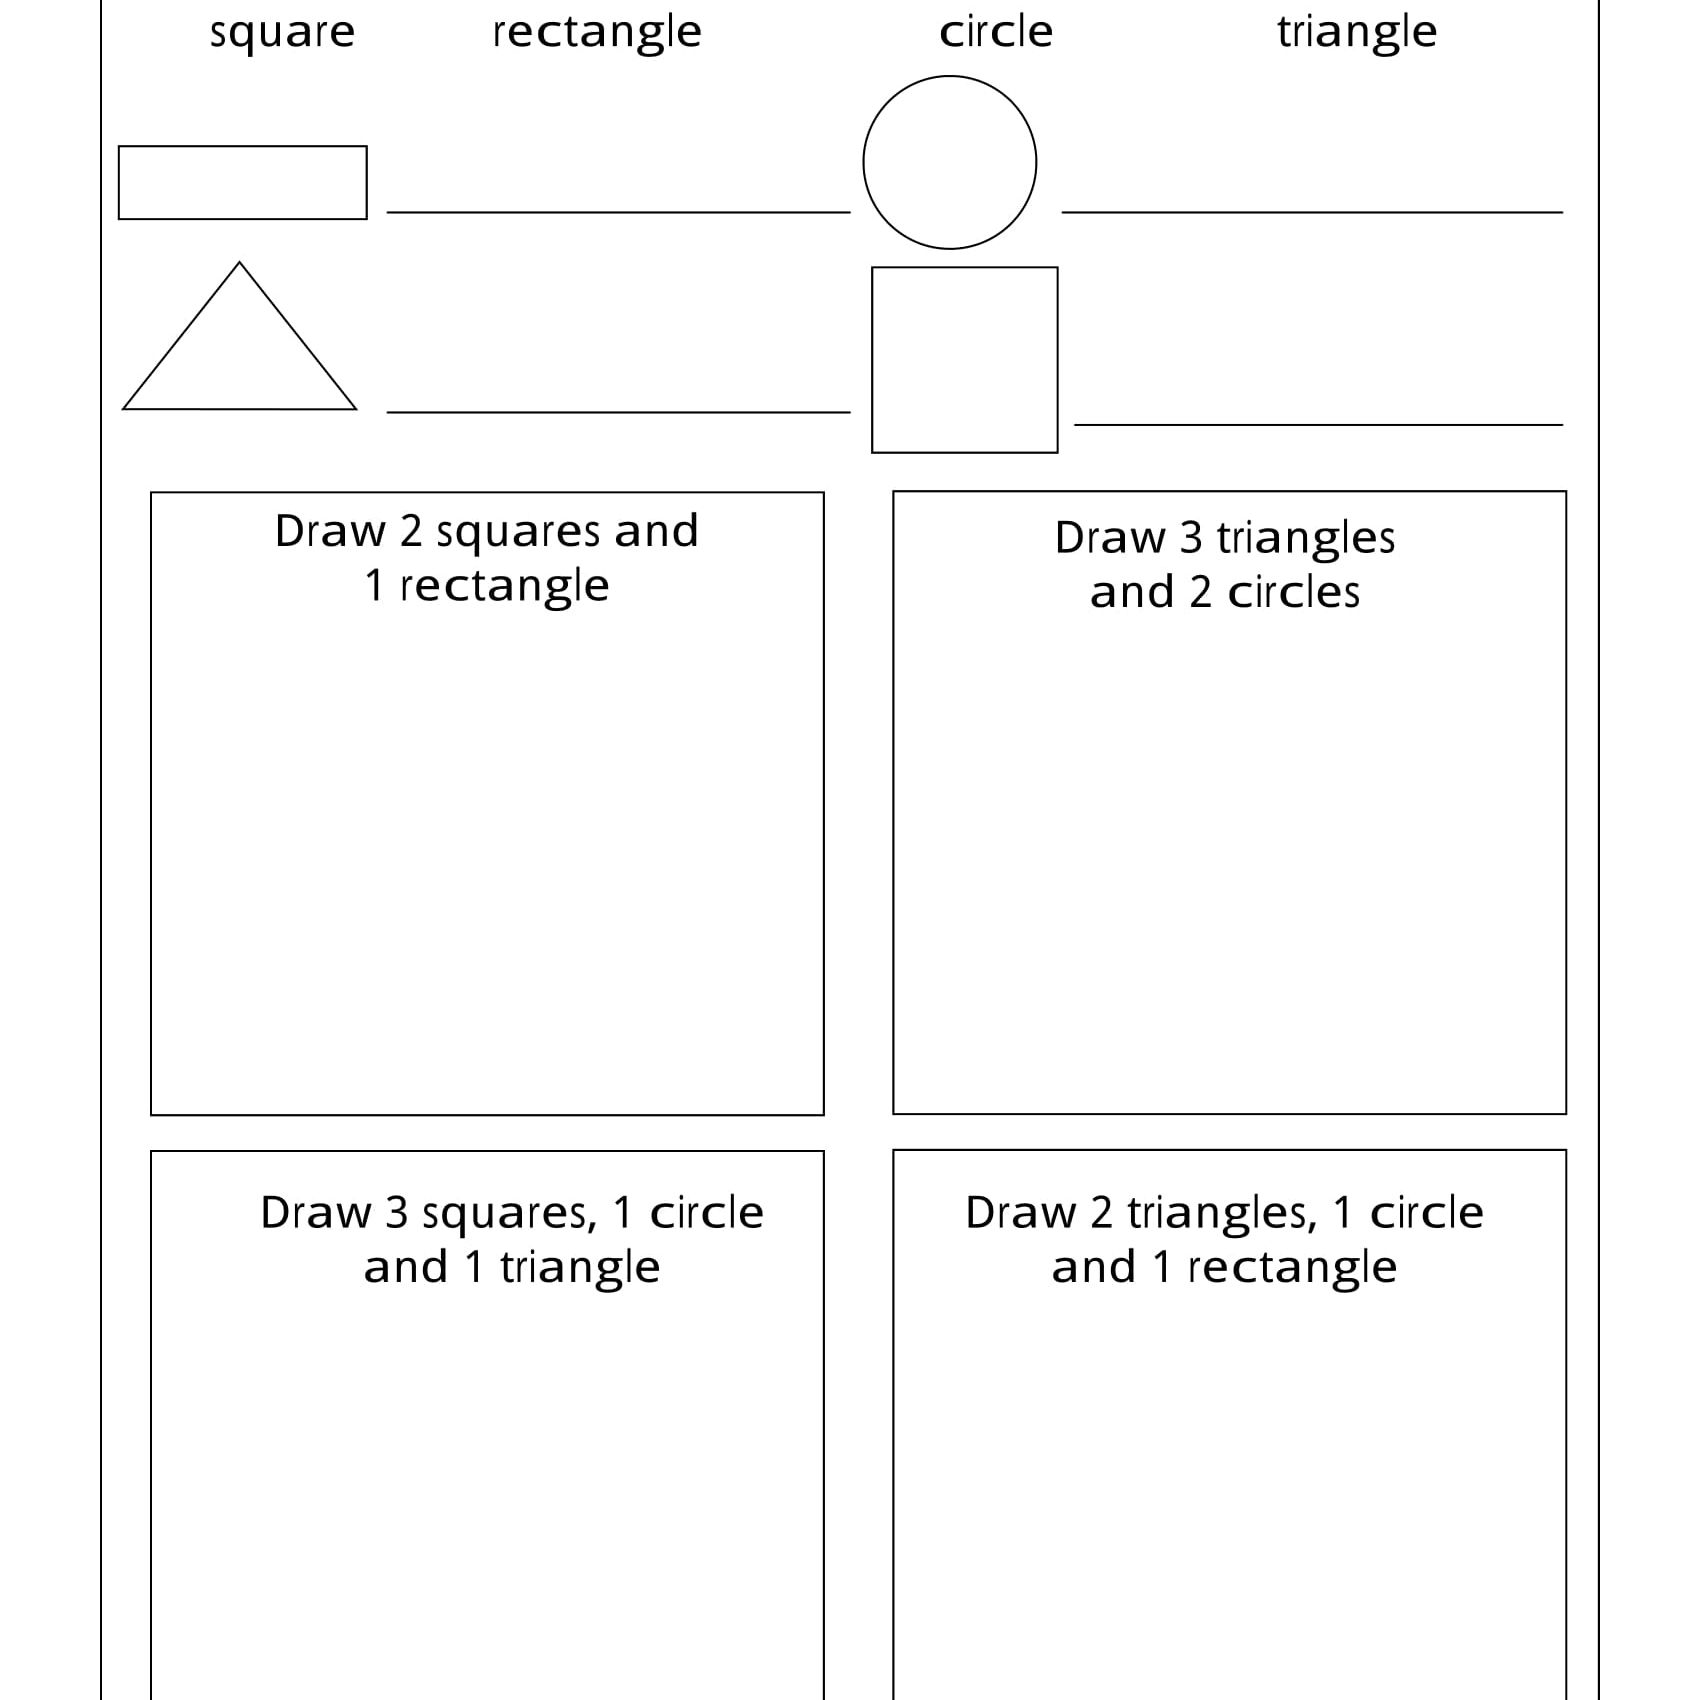 Geometry Worksheets For Students In 1St Grade - Free Printable Geometry Worksheets For 3Rd Grade